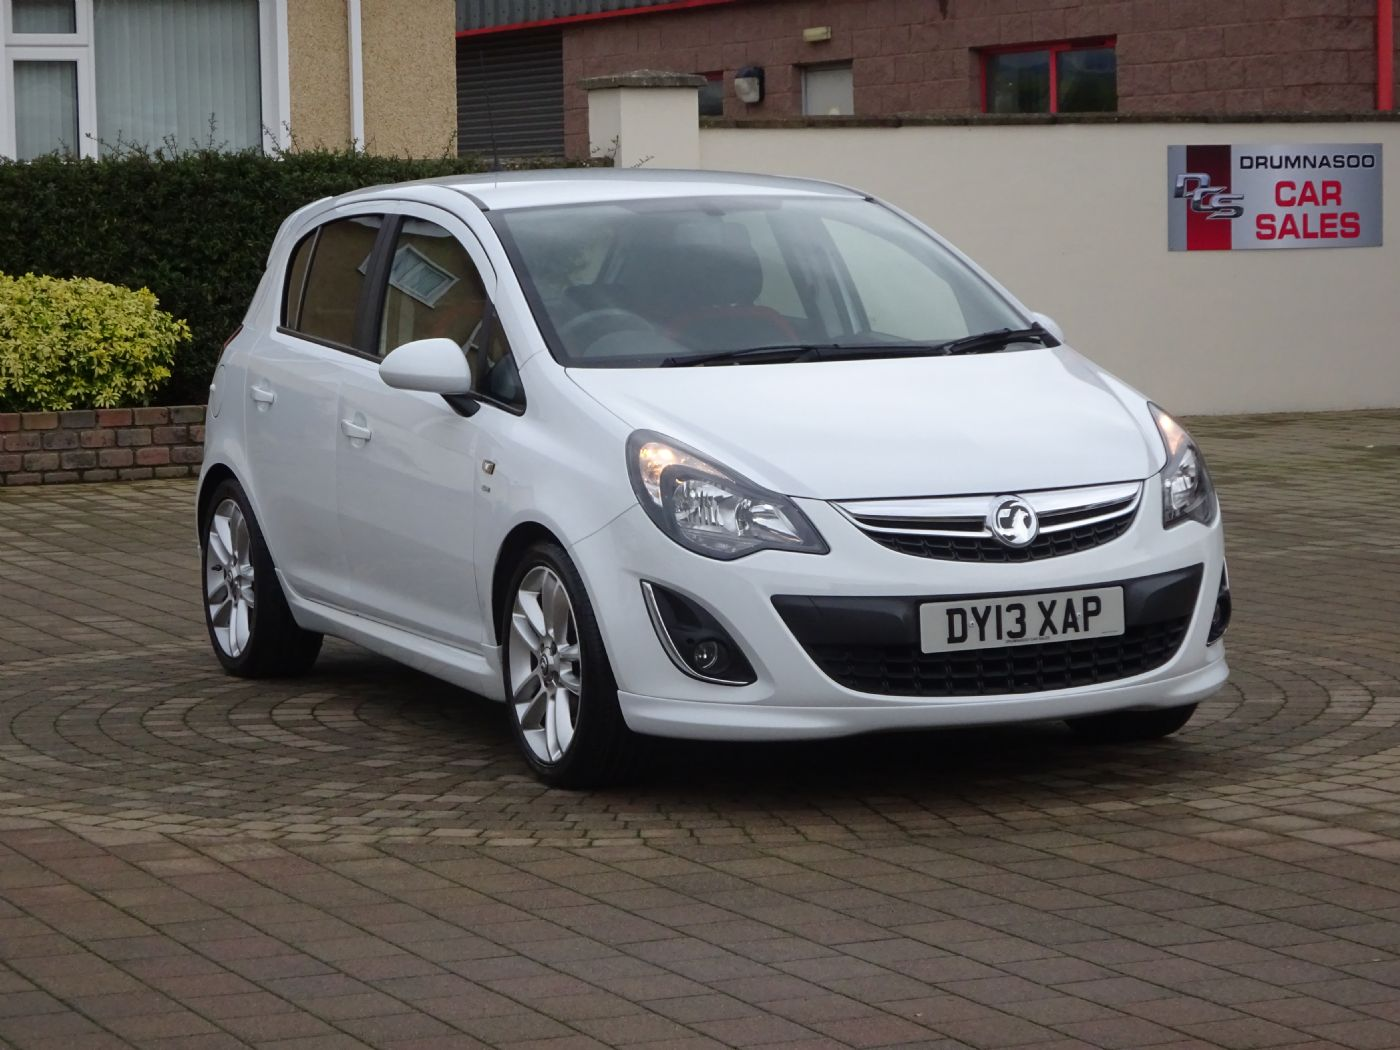 Vauxhall Corsa 1.4 5Dr, Cruise control